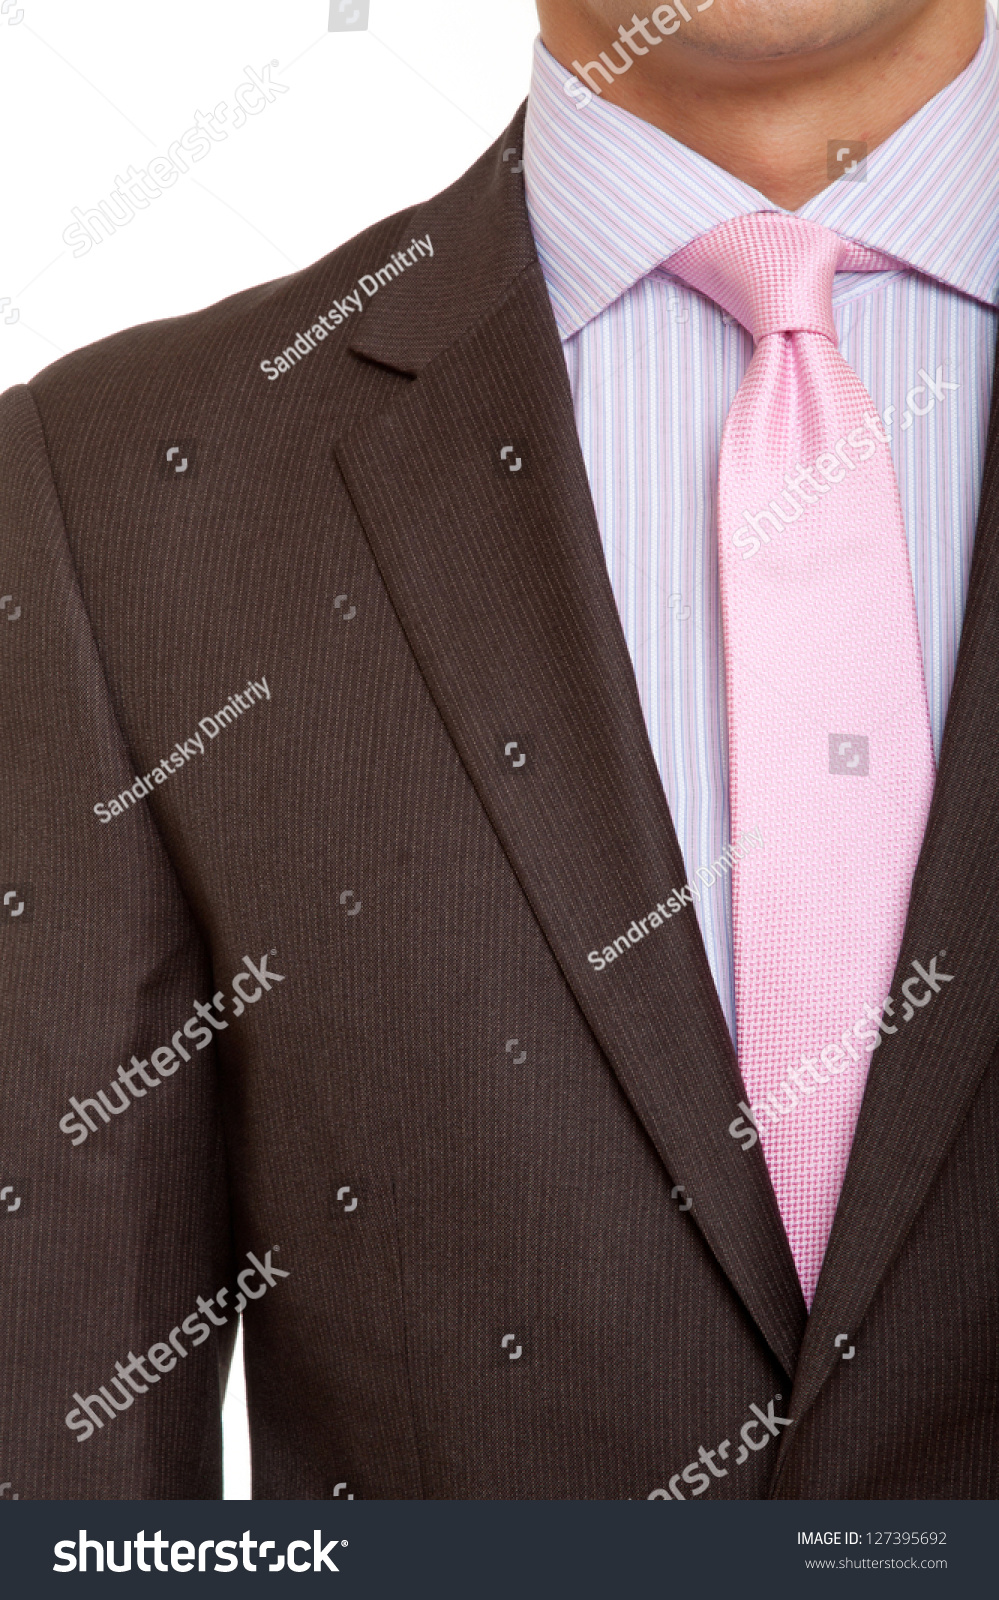 Brown Suit Pink Tie Stock Photo 127395692 - Shutterstock